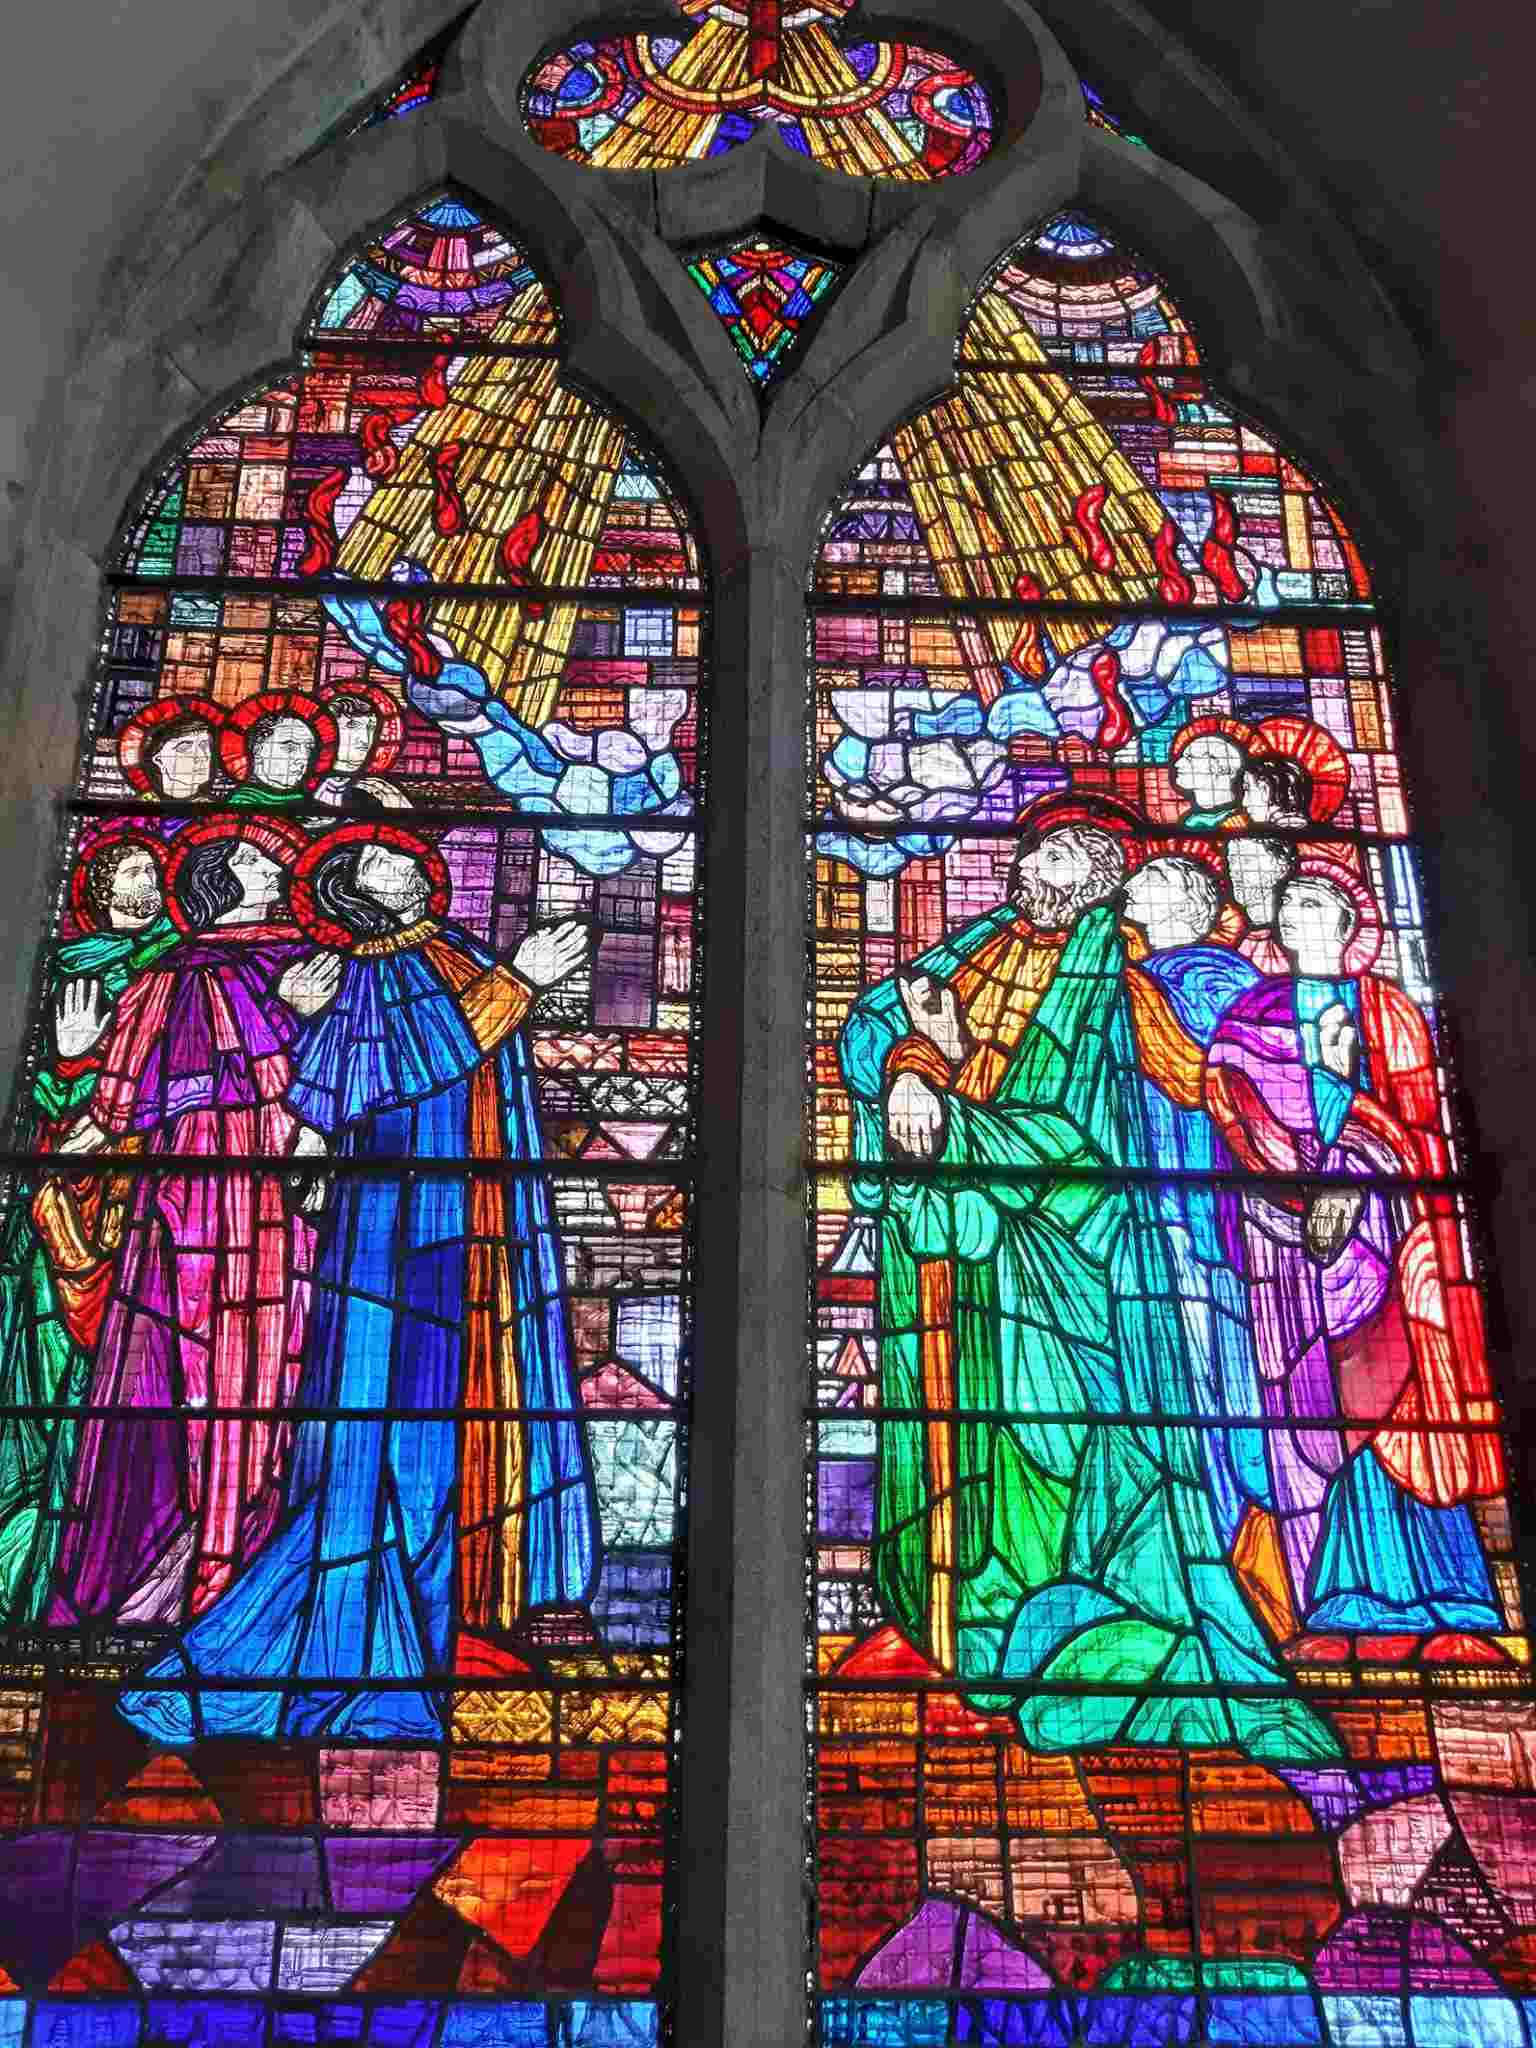 The Pentecost Window by Evie Hone in the Visitor Centre